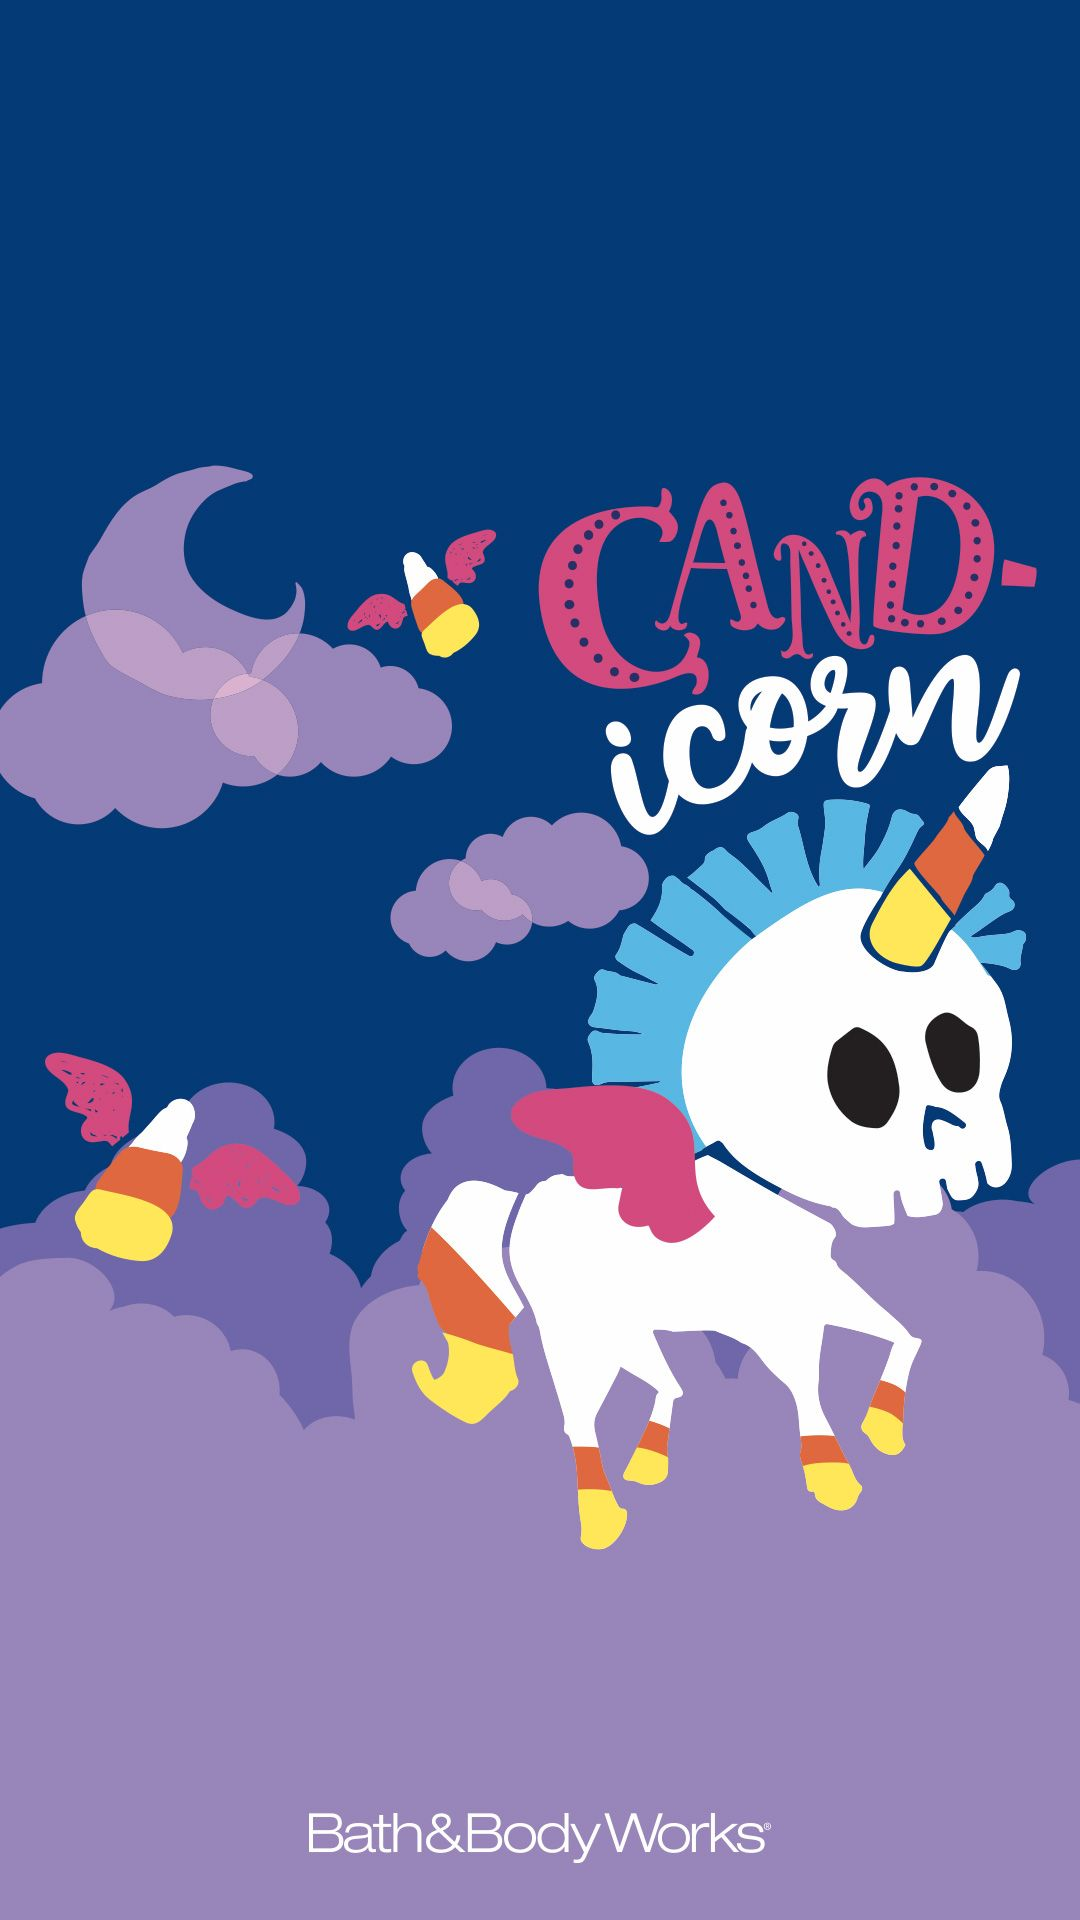 Candi Corn Halloween Iphone Wallpaper Unicorn Wallpaper Phone Wallpaper Pink Holiday Wallpaper